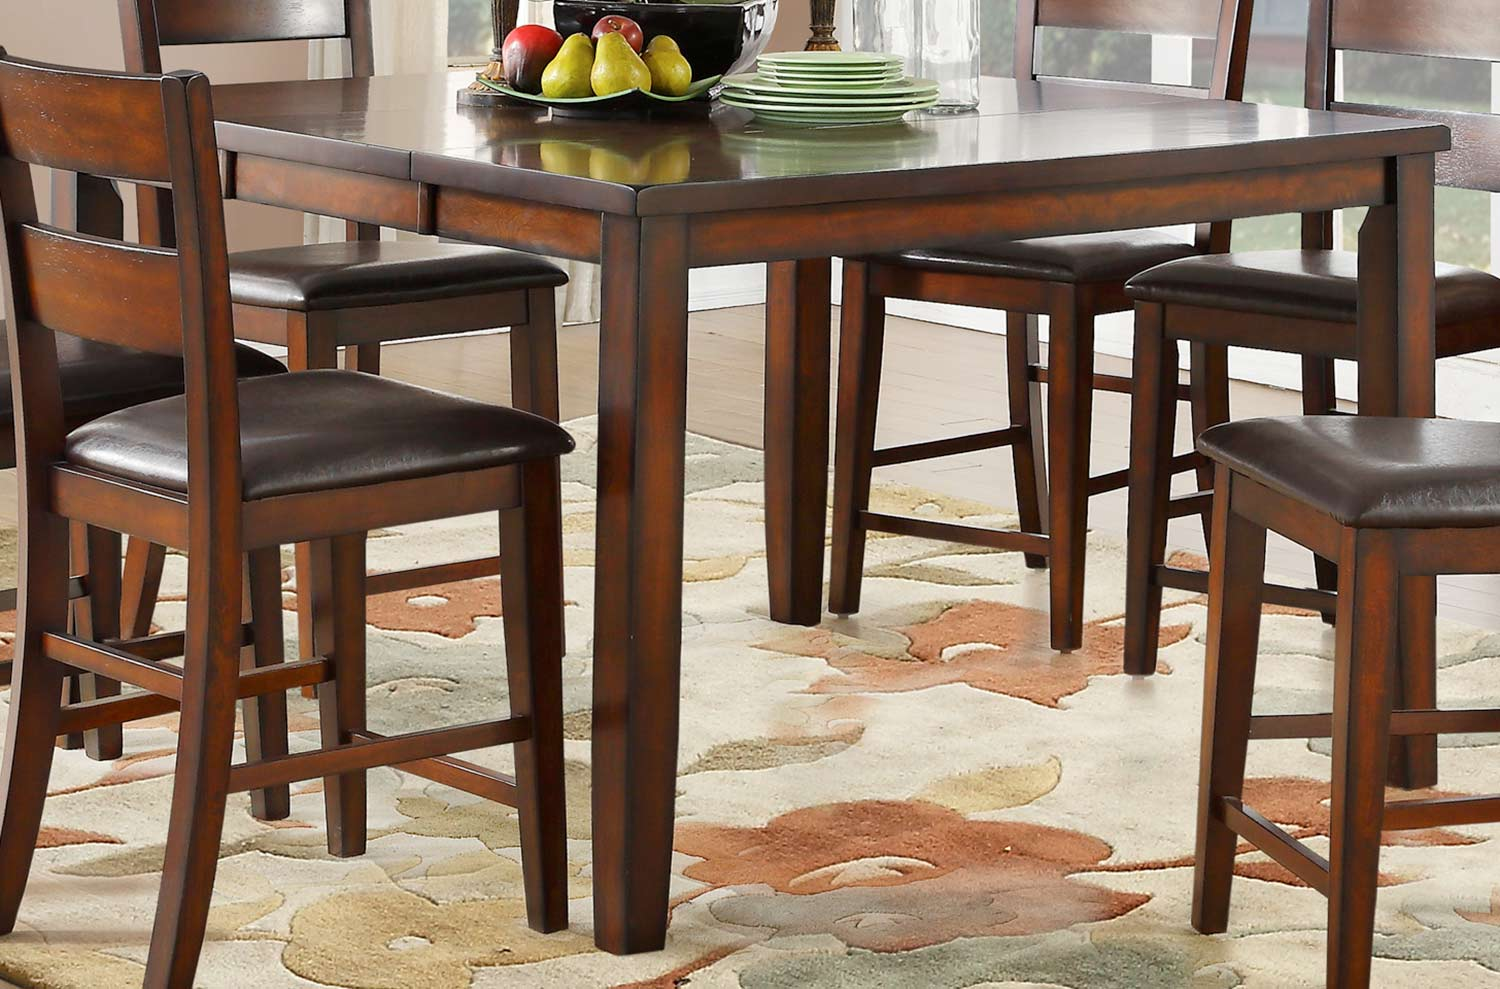 Homelegance Mantello Counter Height Dining Table - Cherry